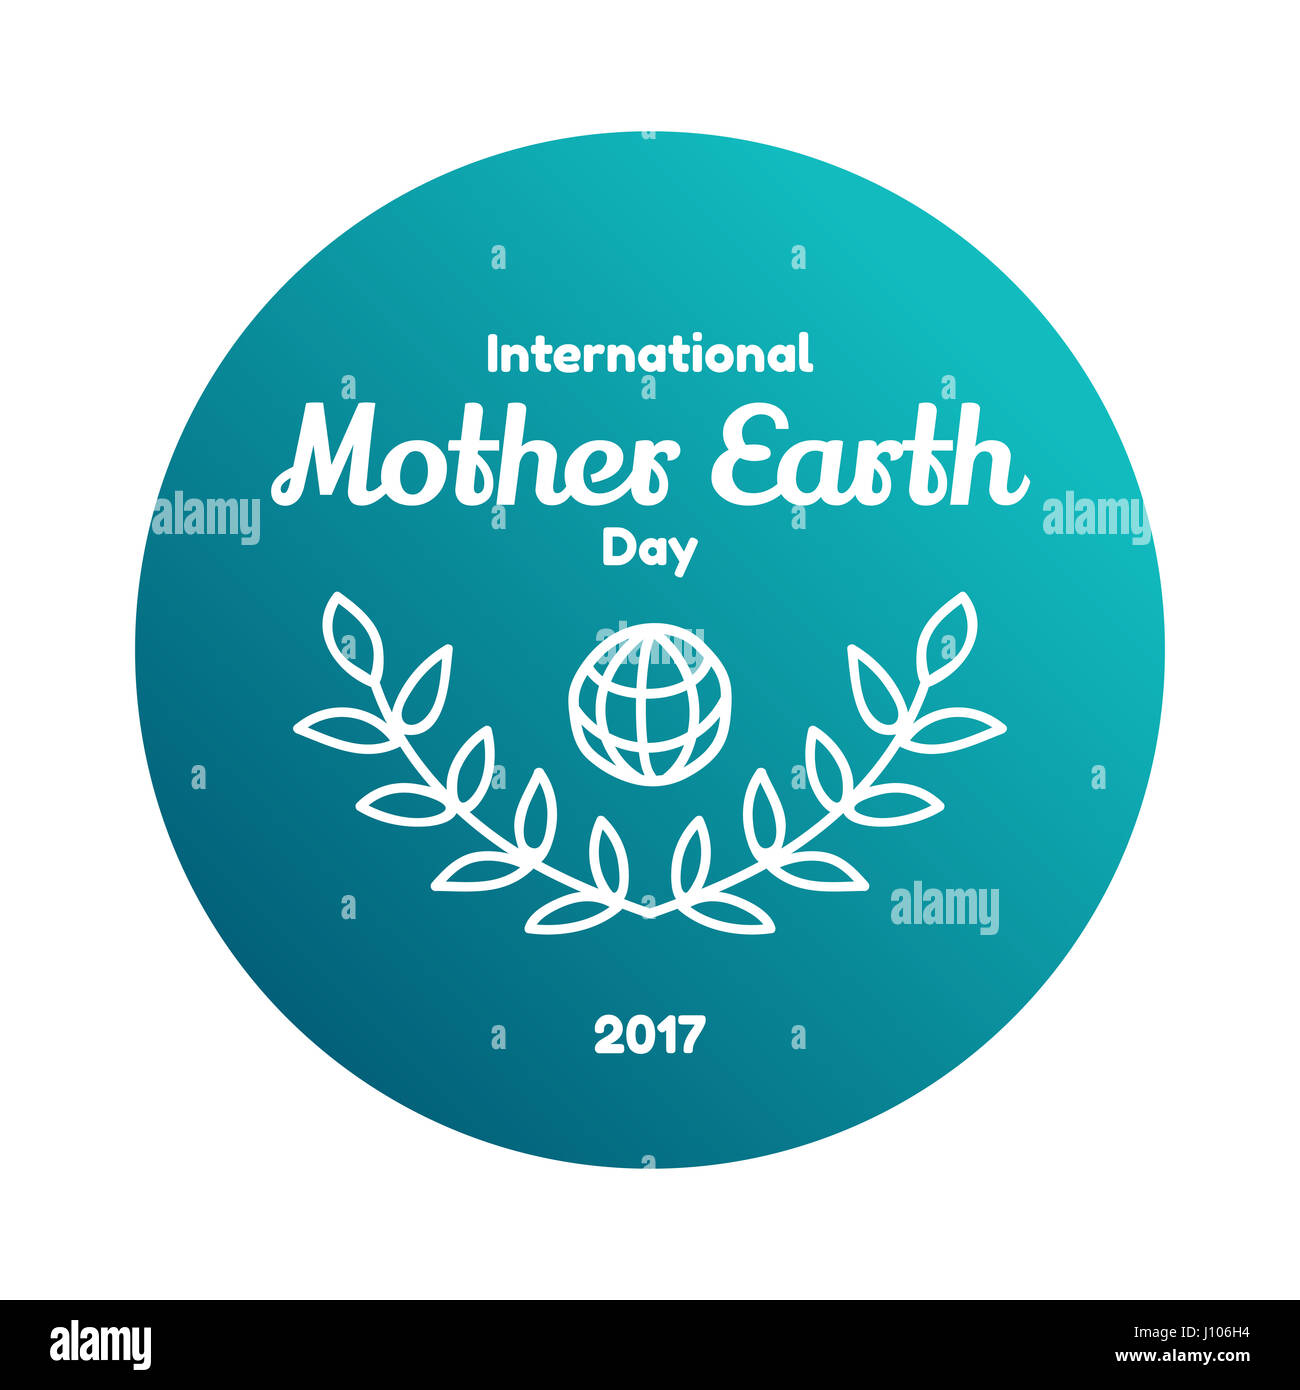 International Mother Earth Day April 22 The Event